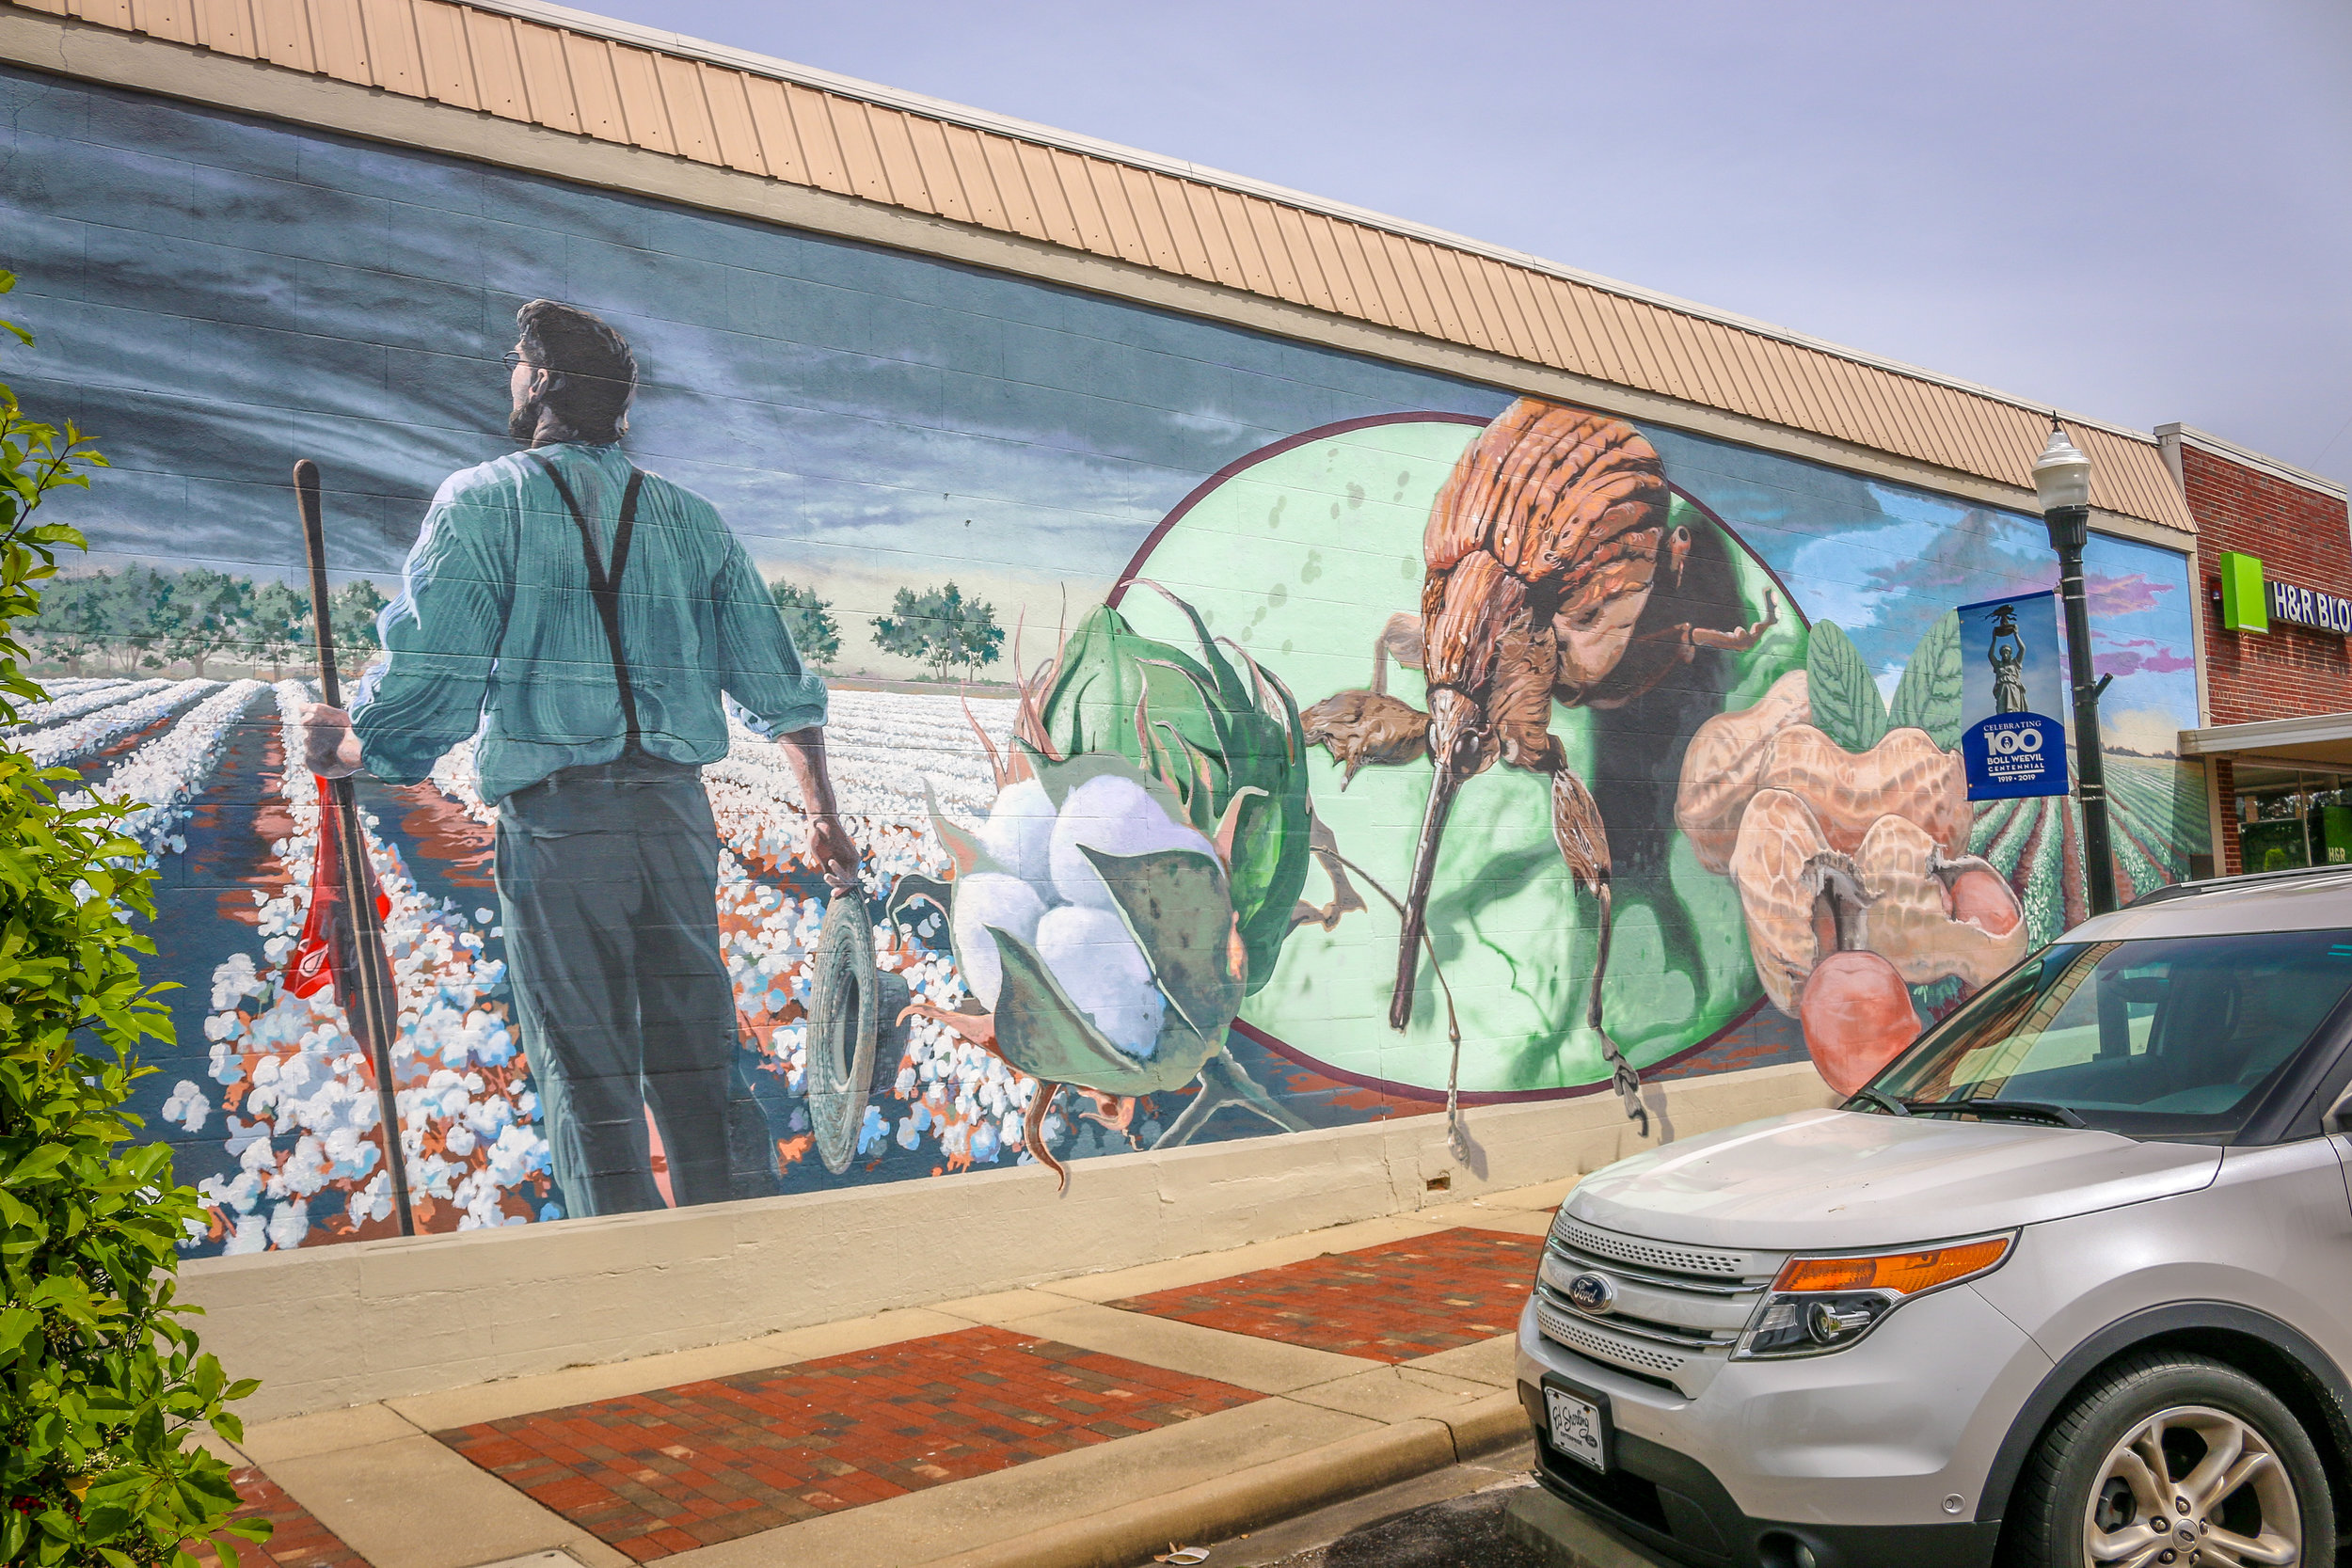 Boll Weevil Mural (Weevil Not to Scale)